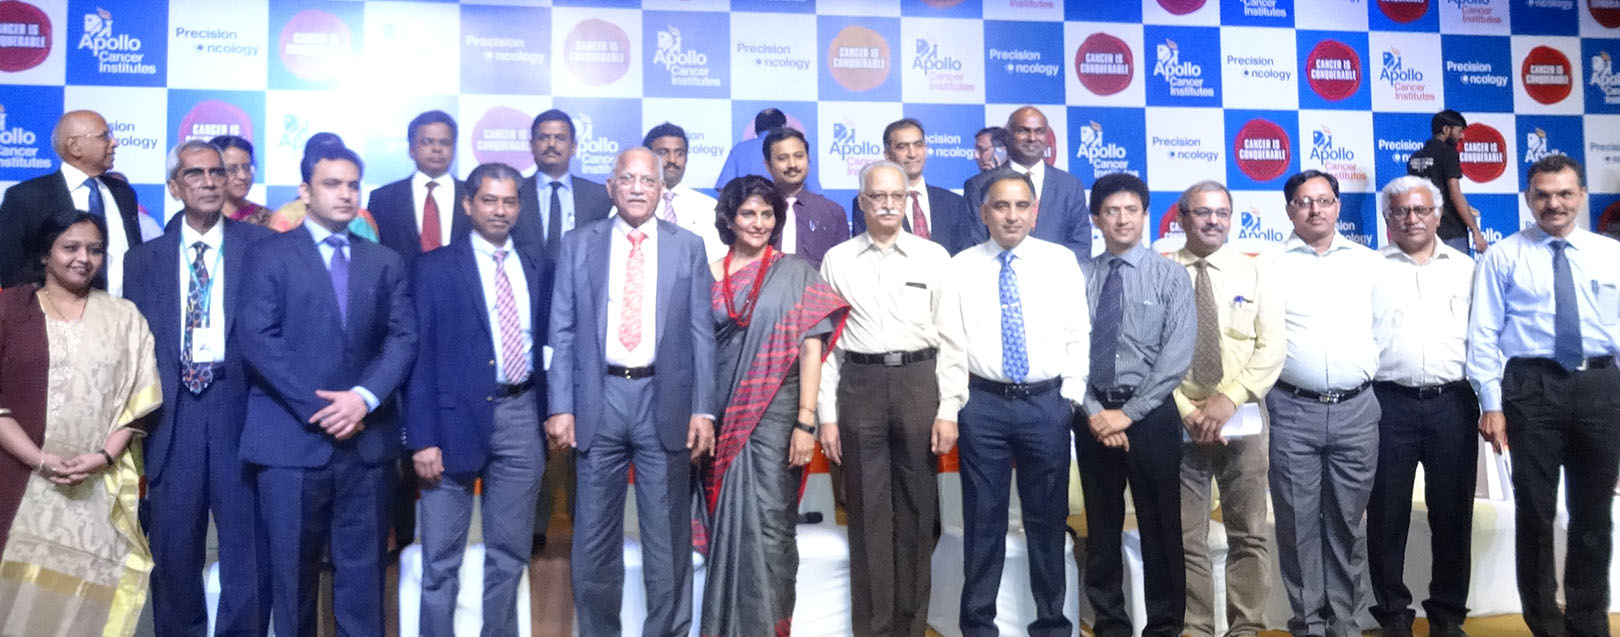 Apollo to invest Rs.1,200 cr in cancer care tech